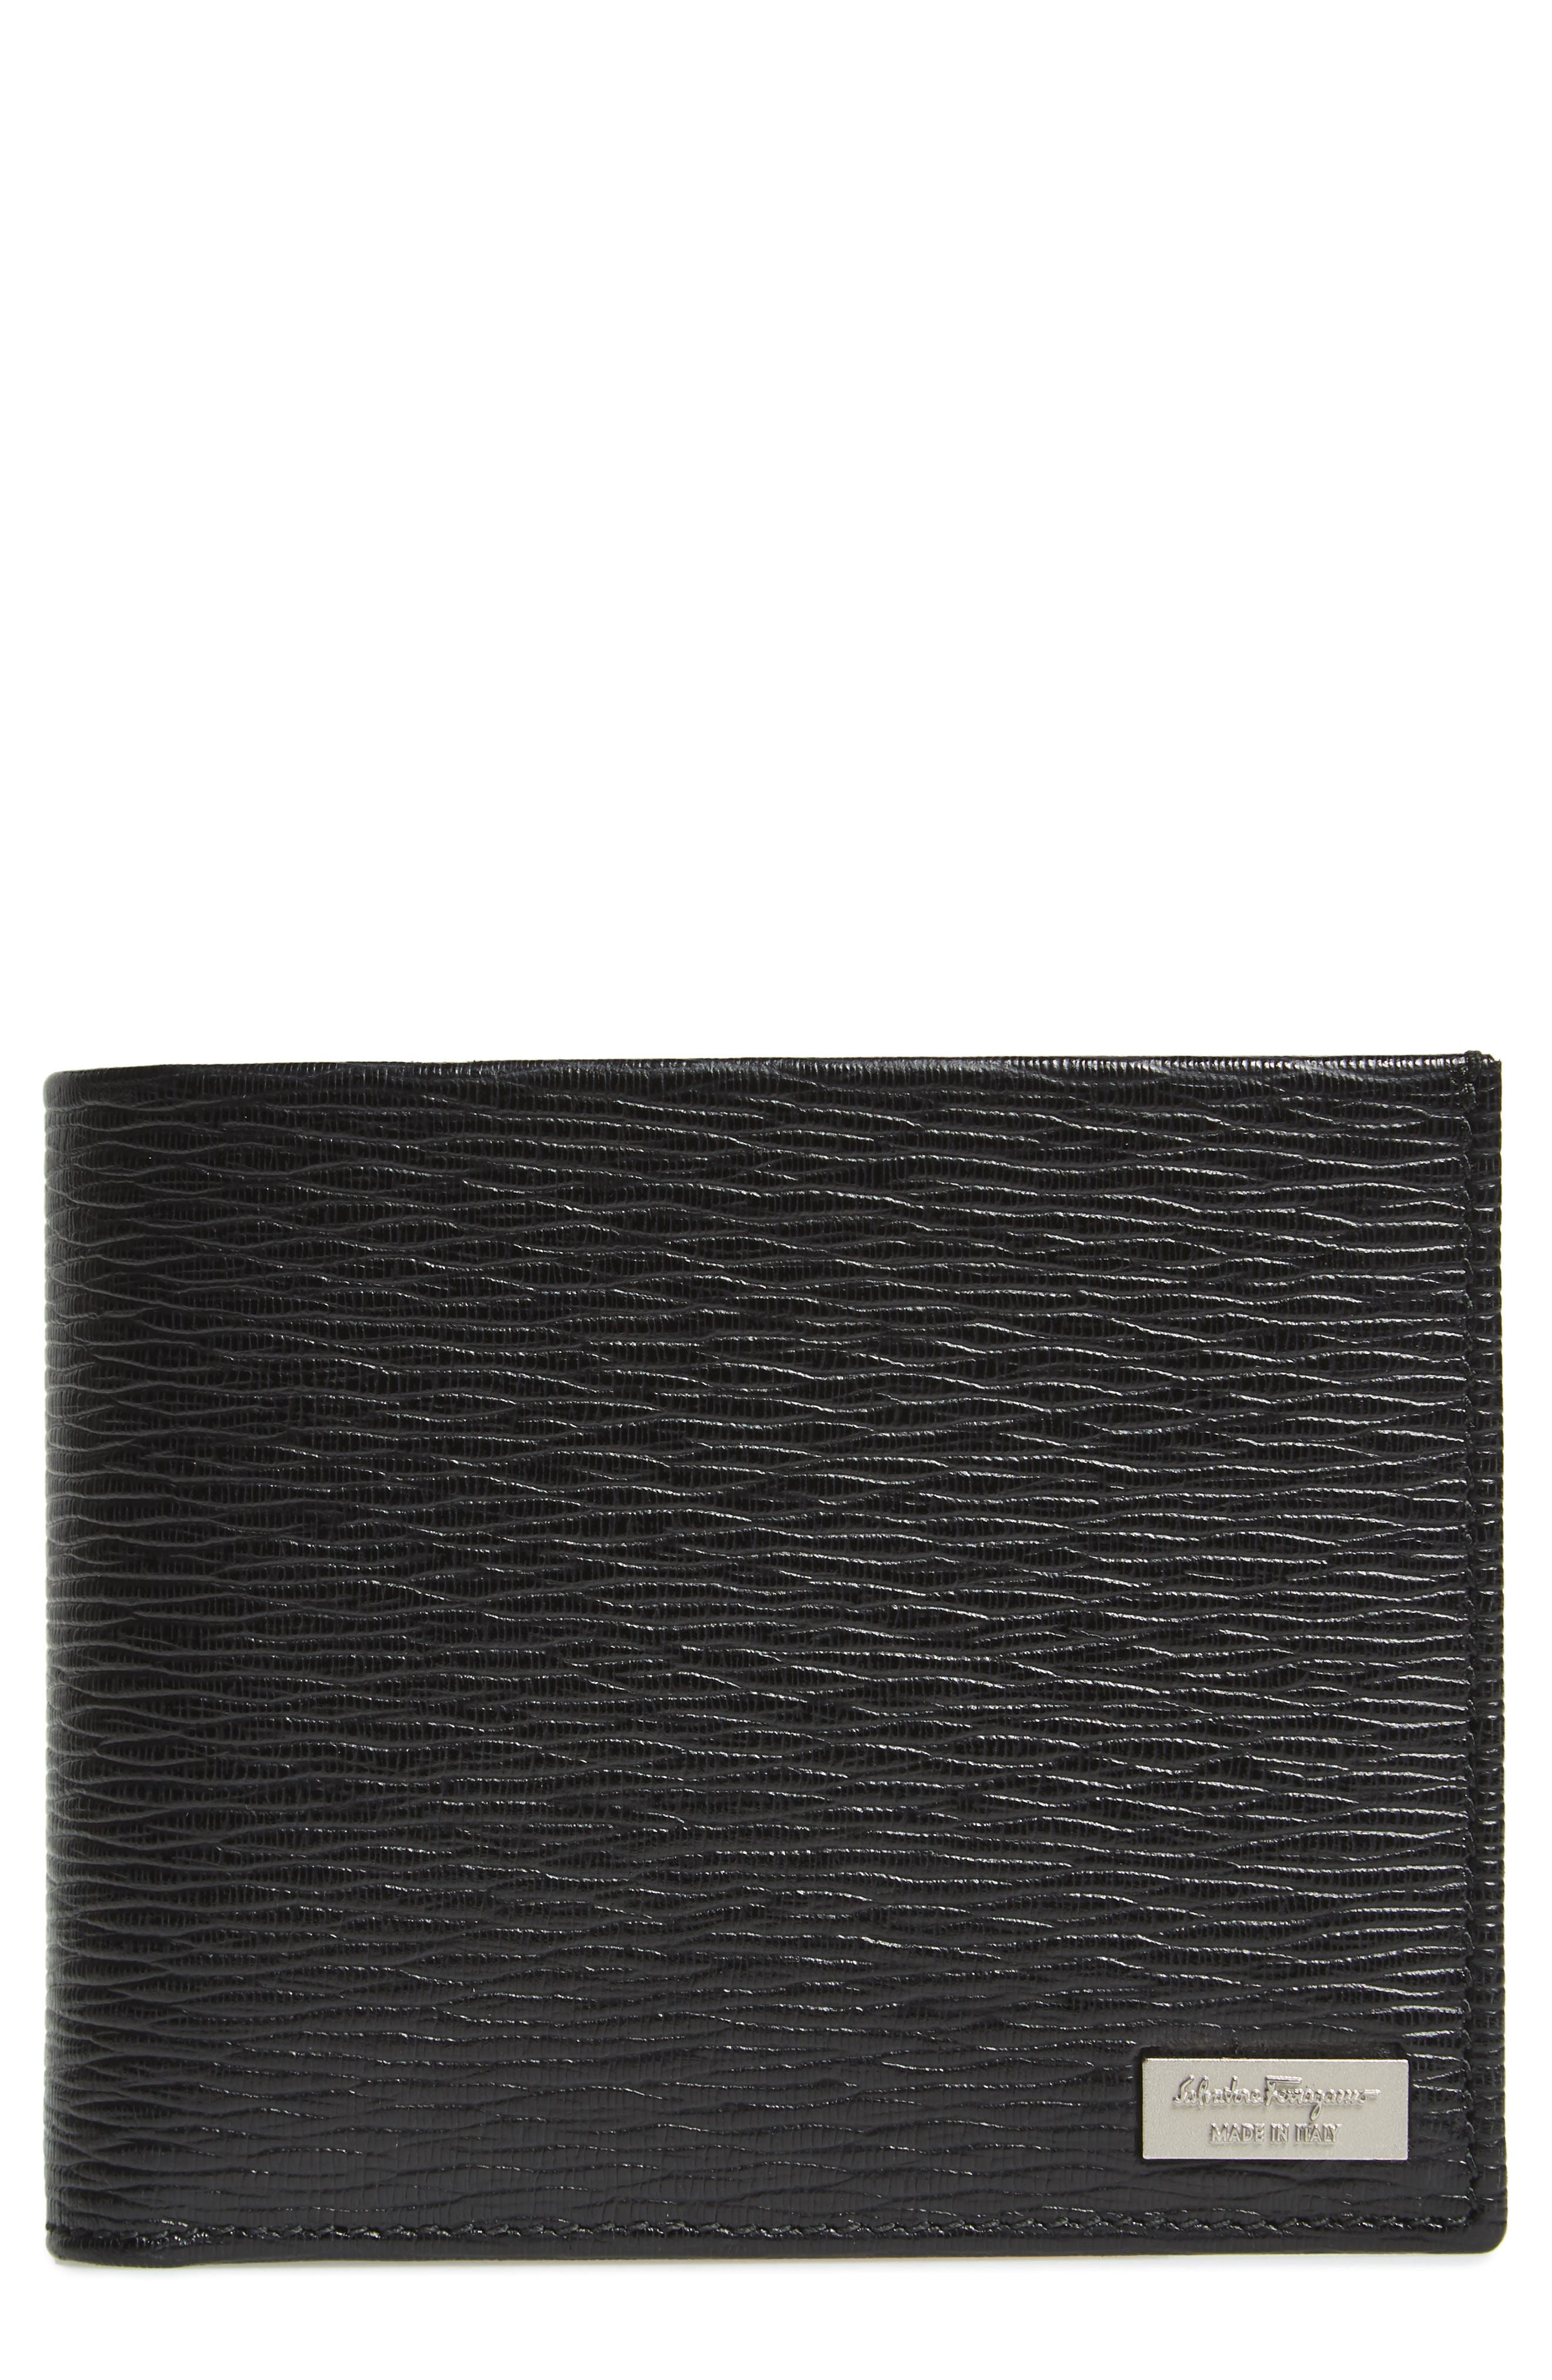 Revival Leather Wallet,                         Main,                         color, 009